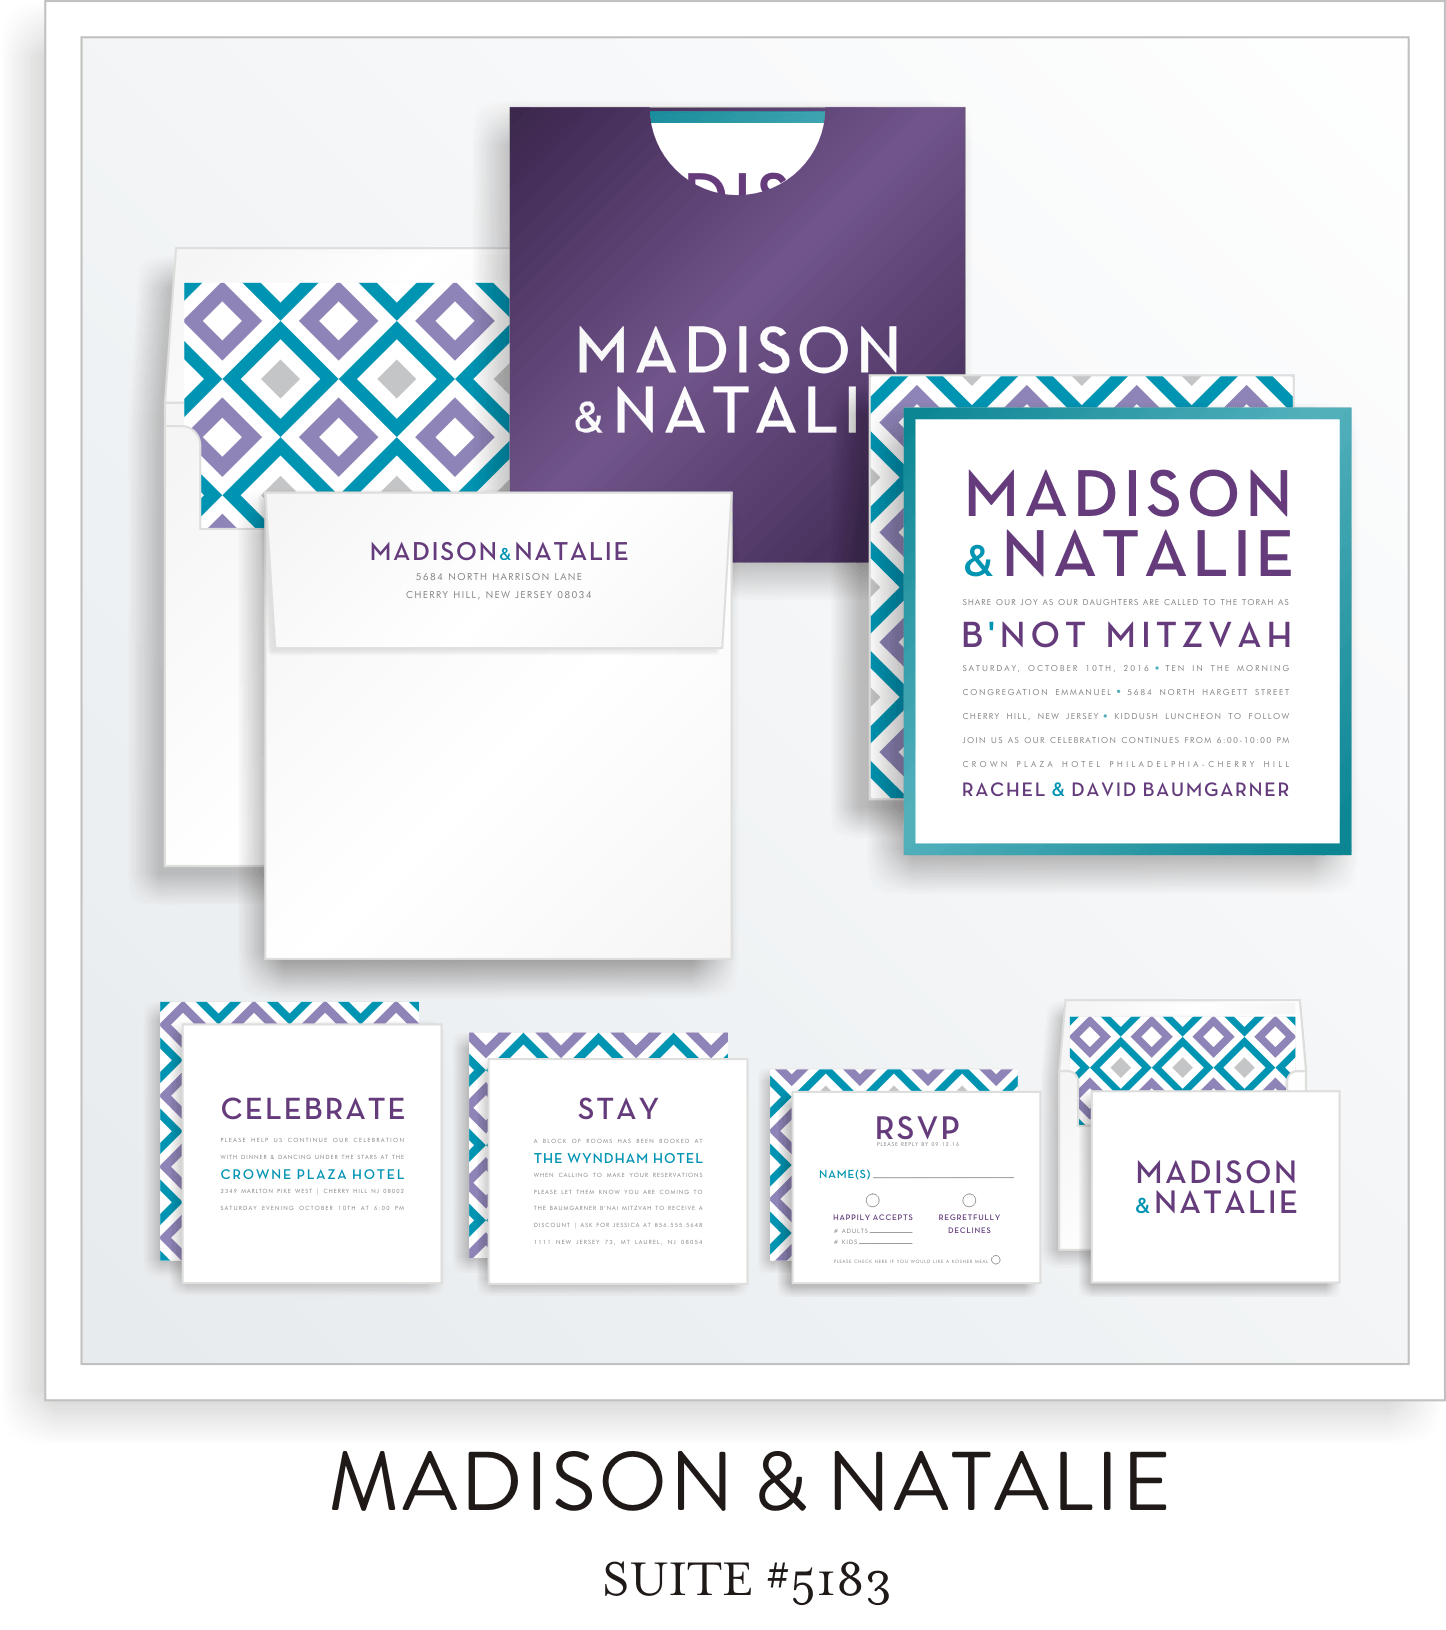 Copy of B'not Mitzvah Invitation Suite 5183 - Madison & Natalie